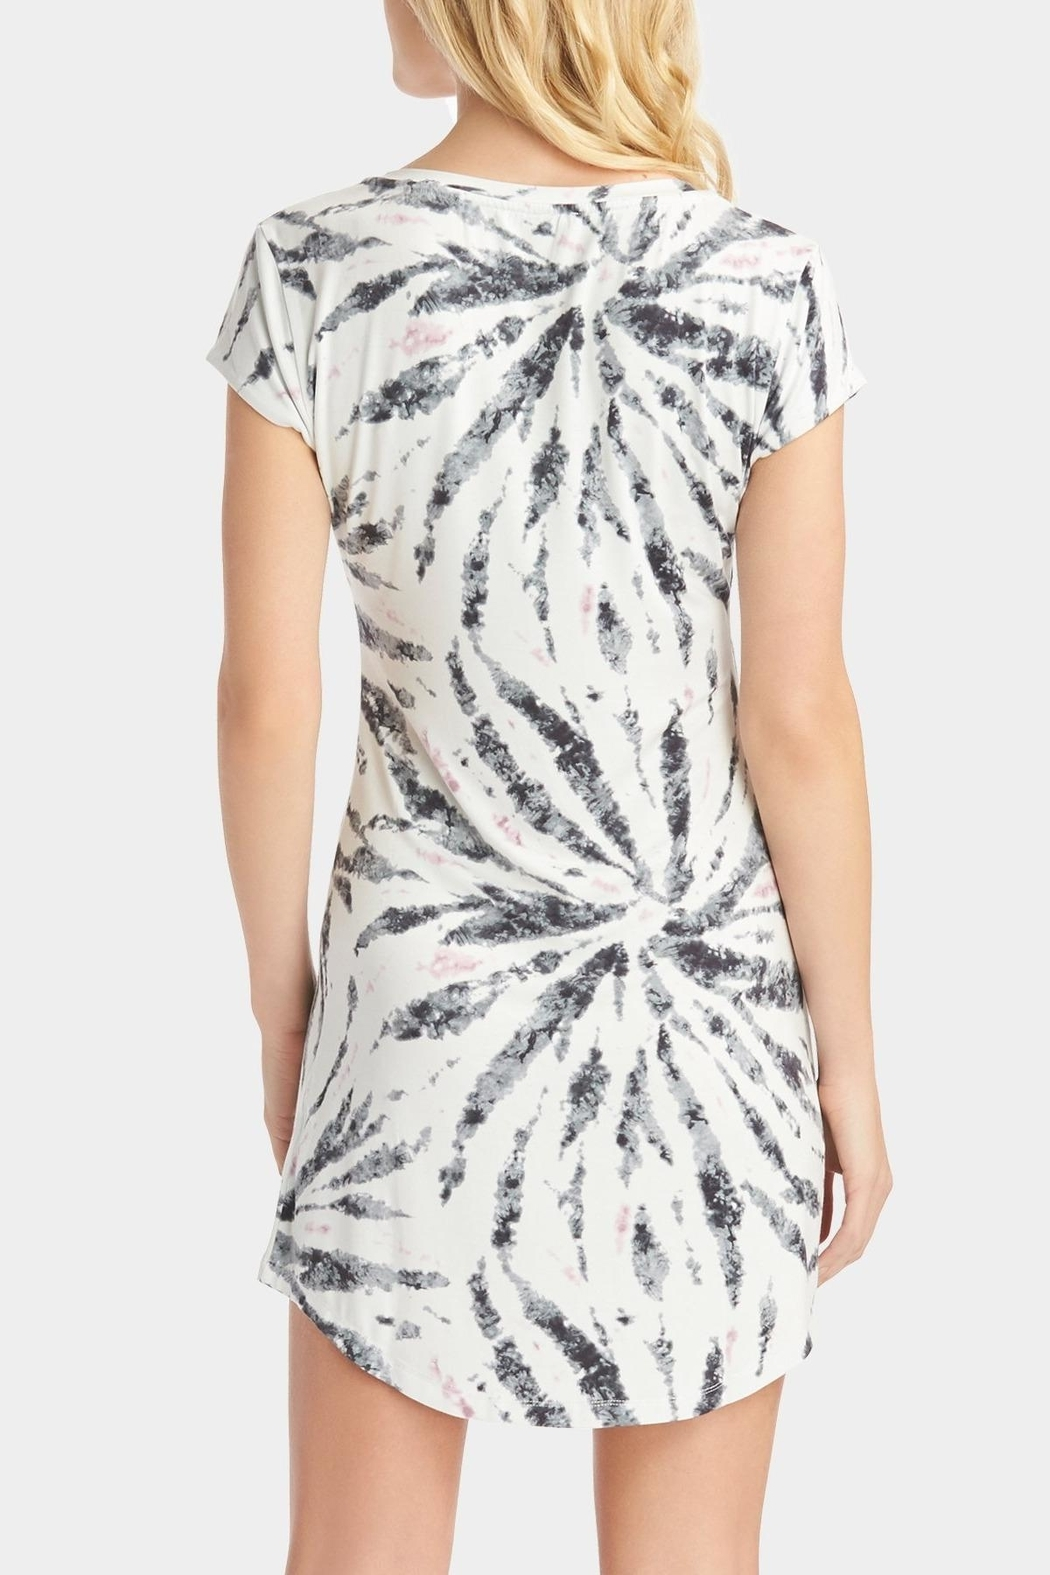 Tart Collections Tie Dye T-Shirt Dress - Side Cropped Image